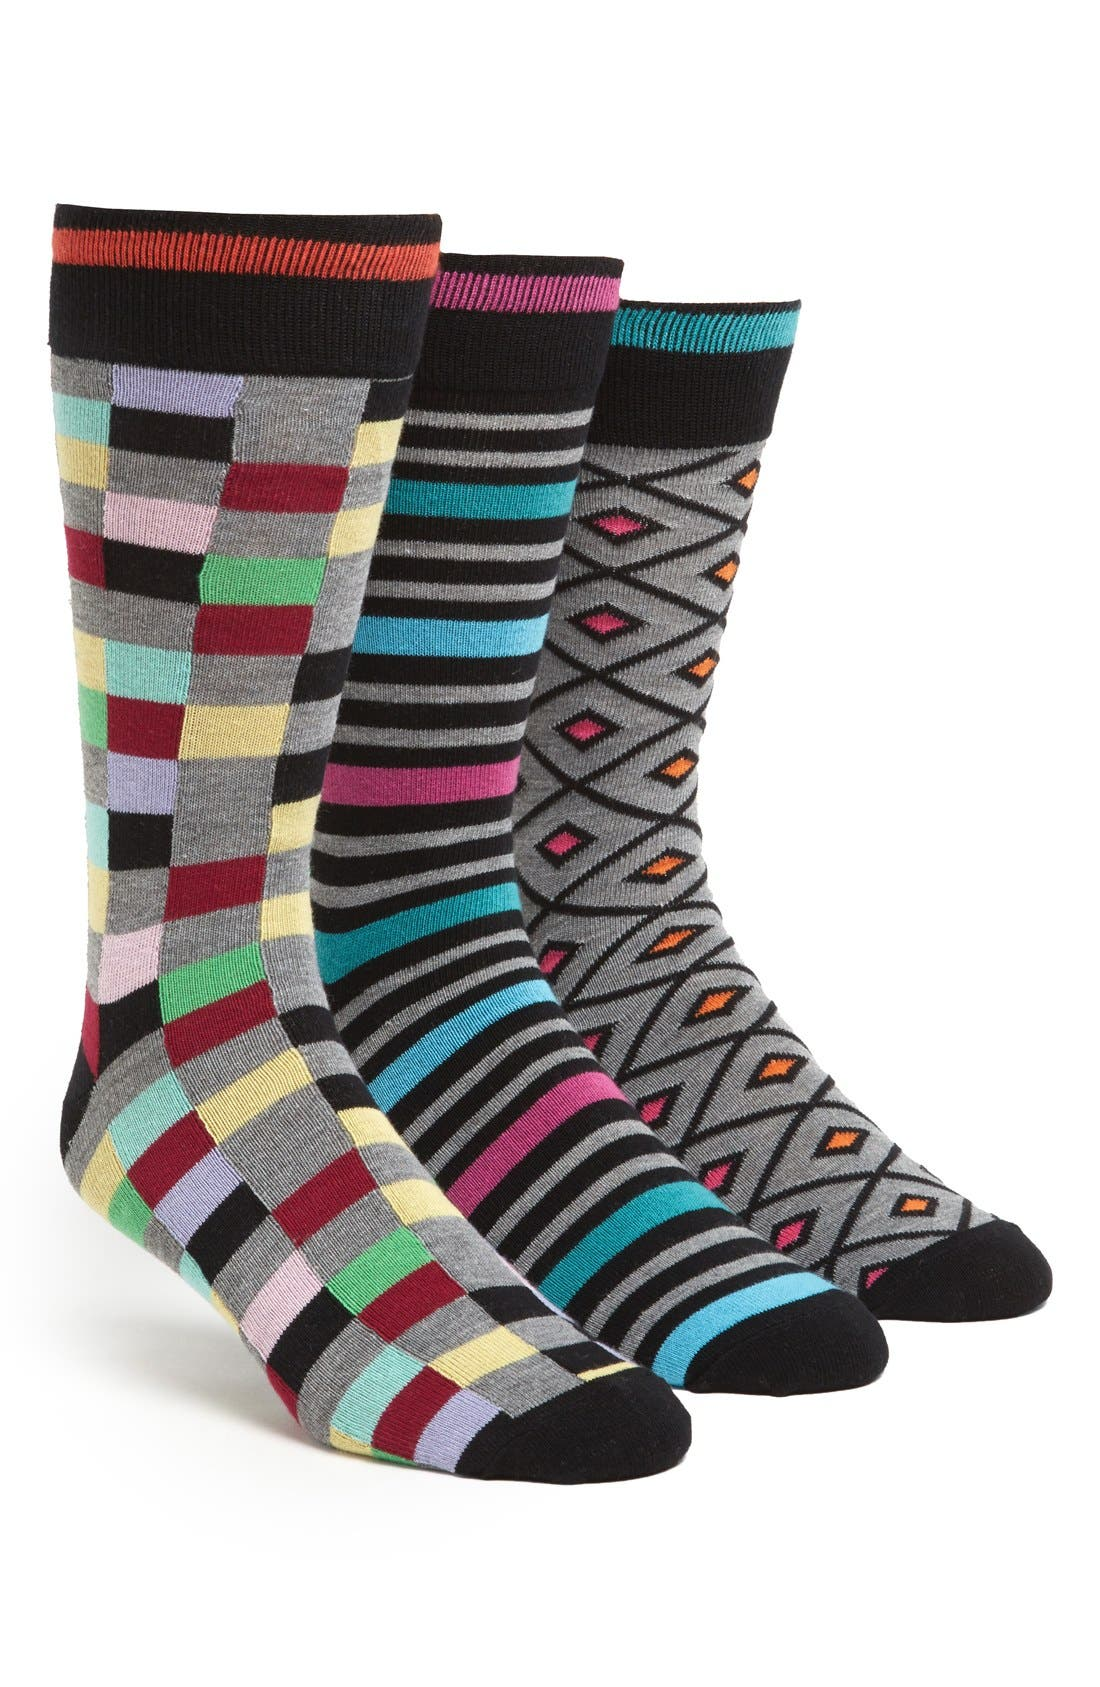 Alternate Image 1 Selected - The Rail Cotton Blend Socks (Assorted 3-Pack)